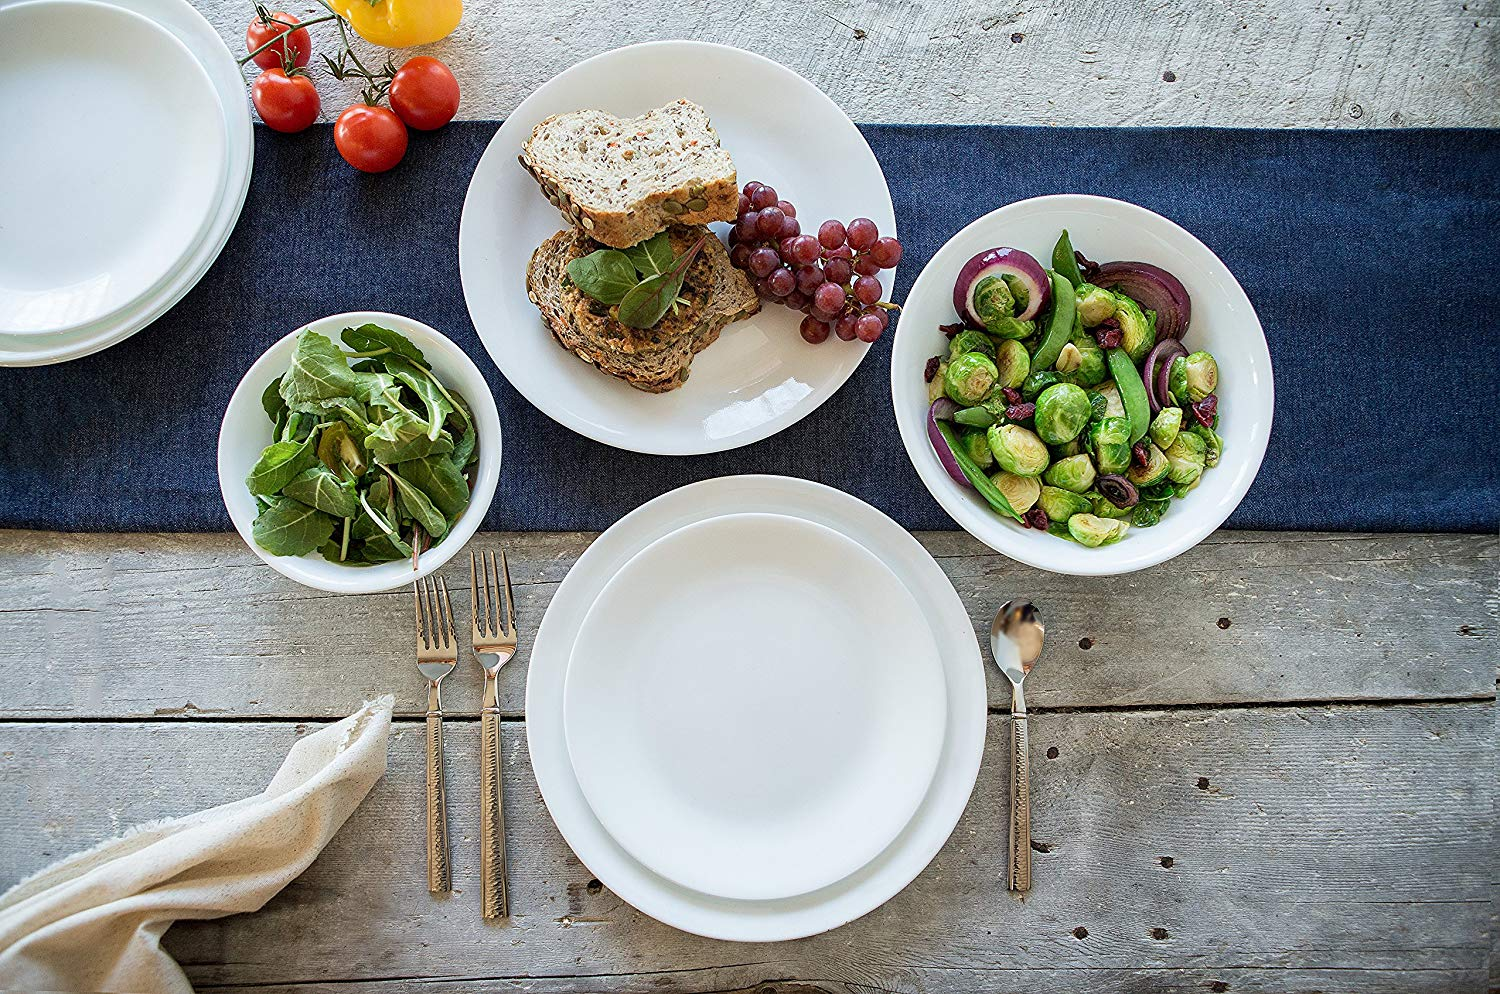 Corelle Dinnerware sets for everyday use